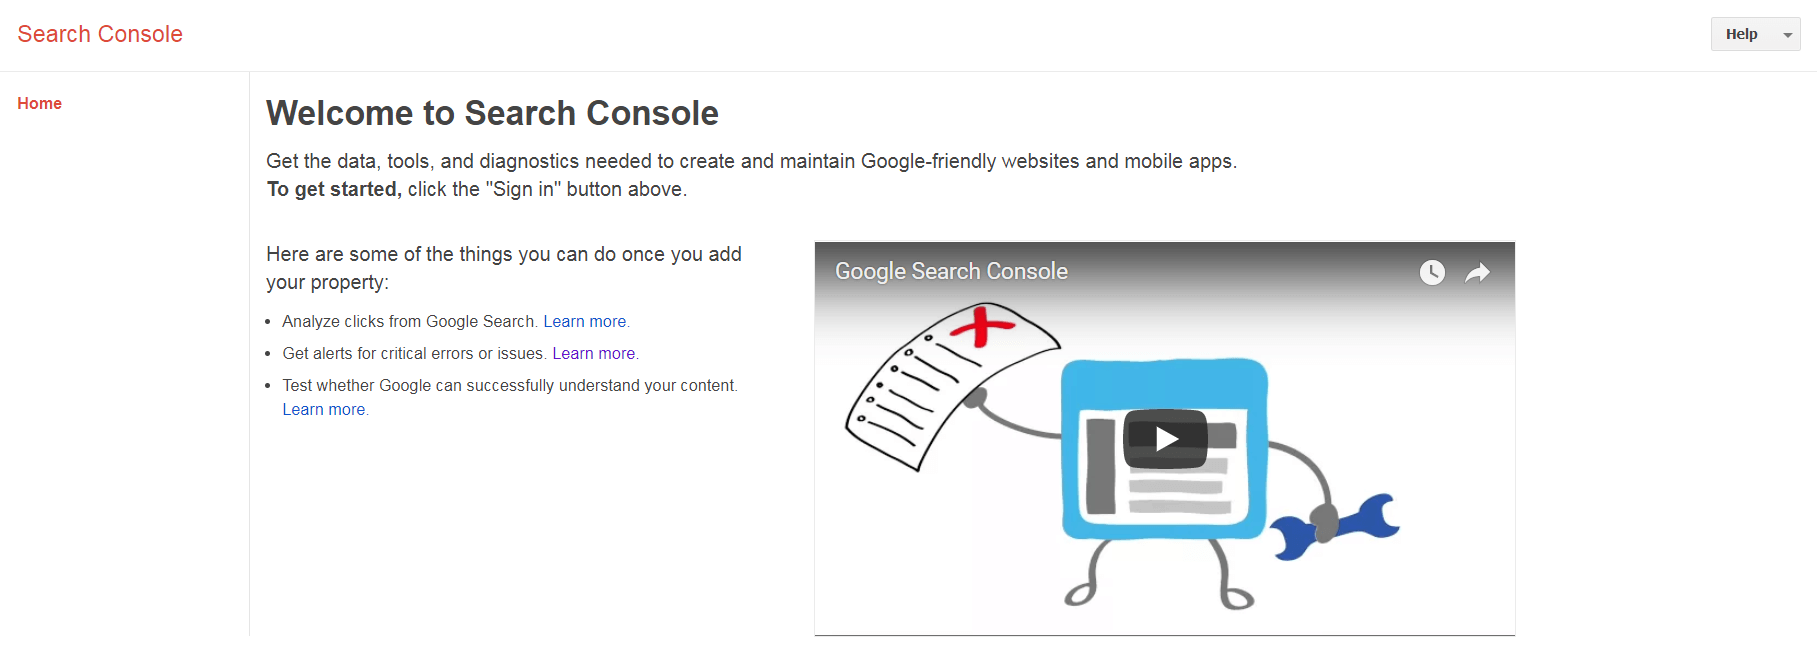 The Google Search Console website.